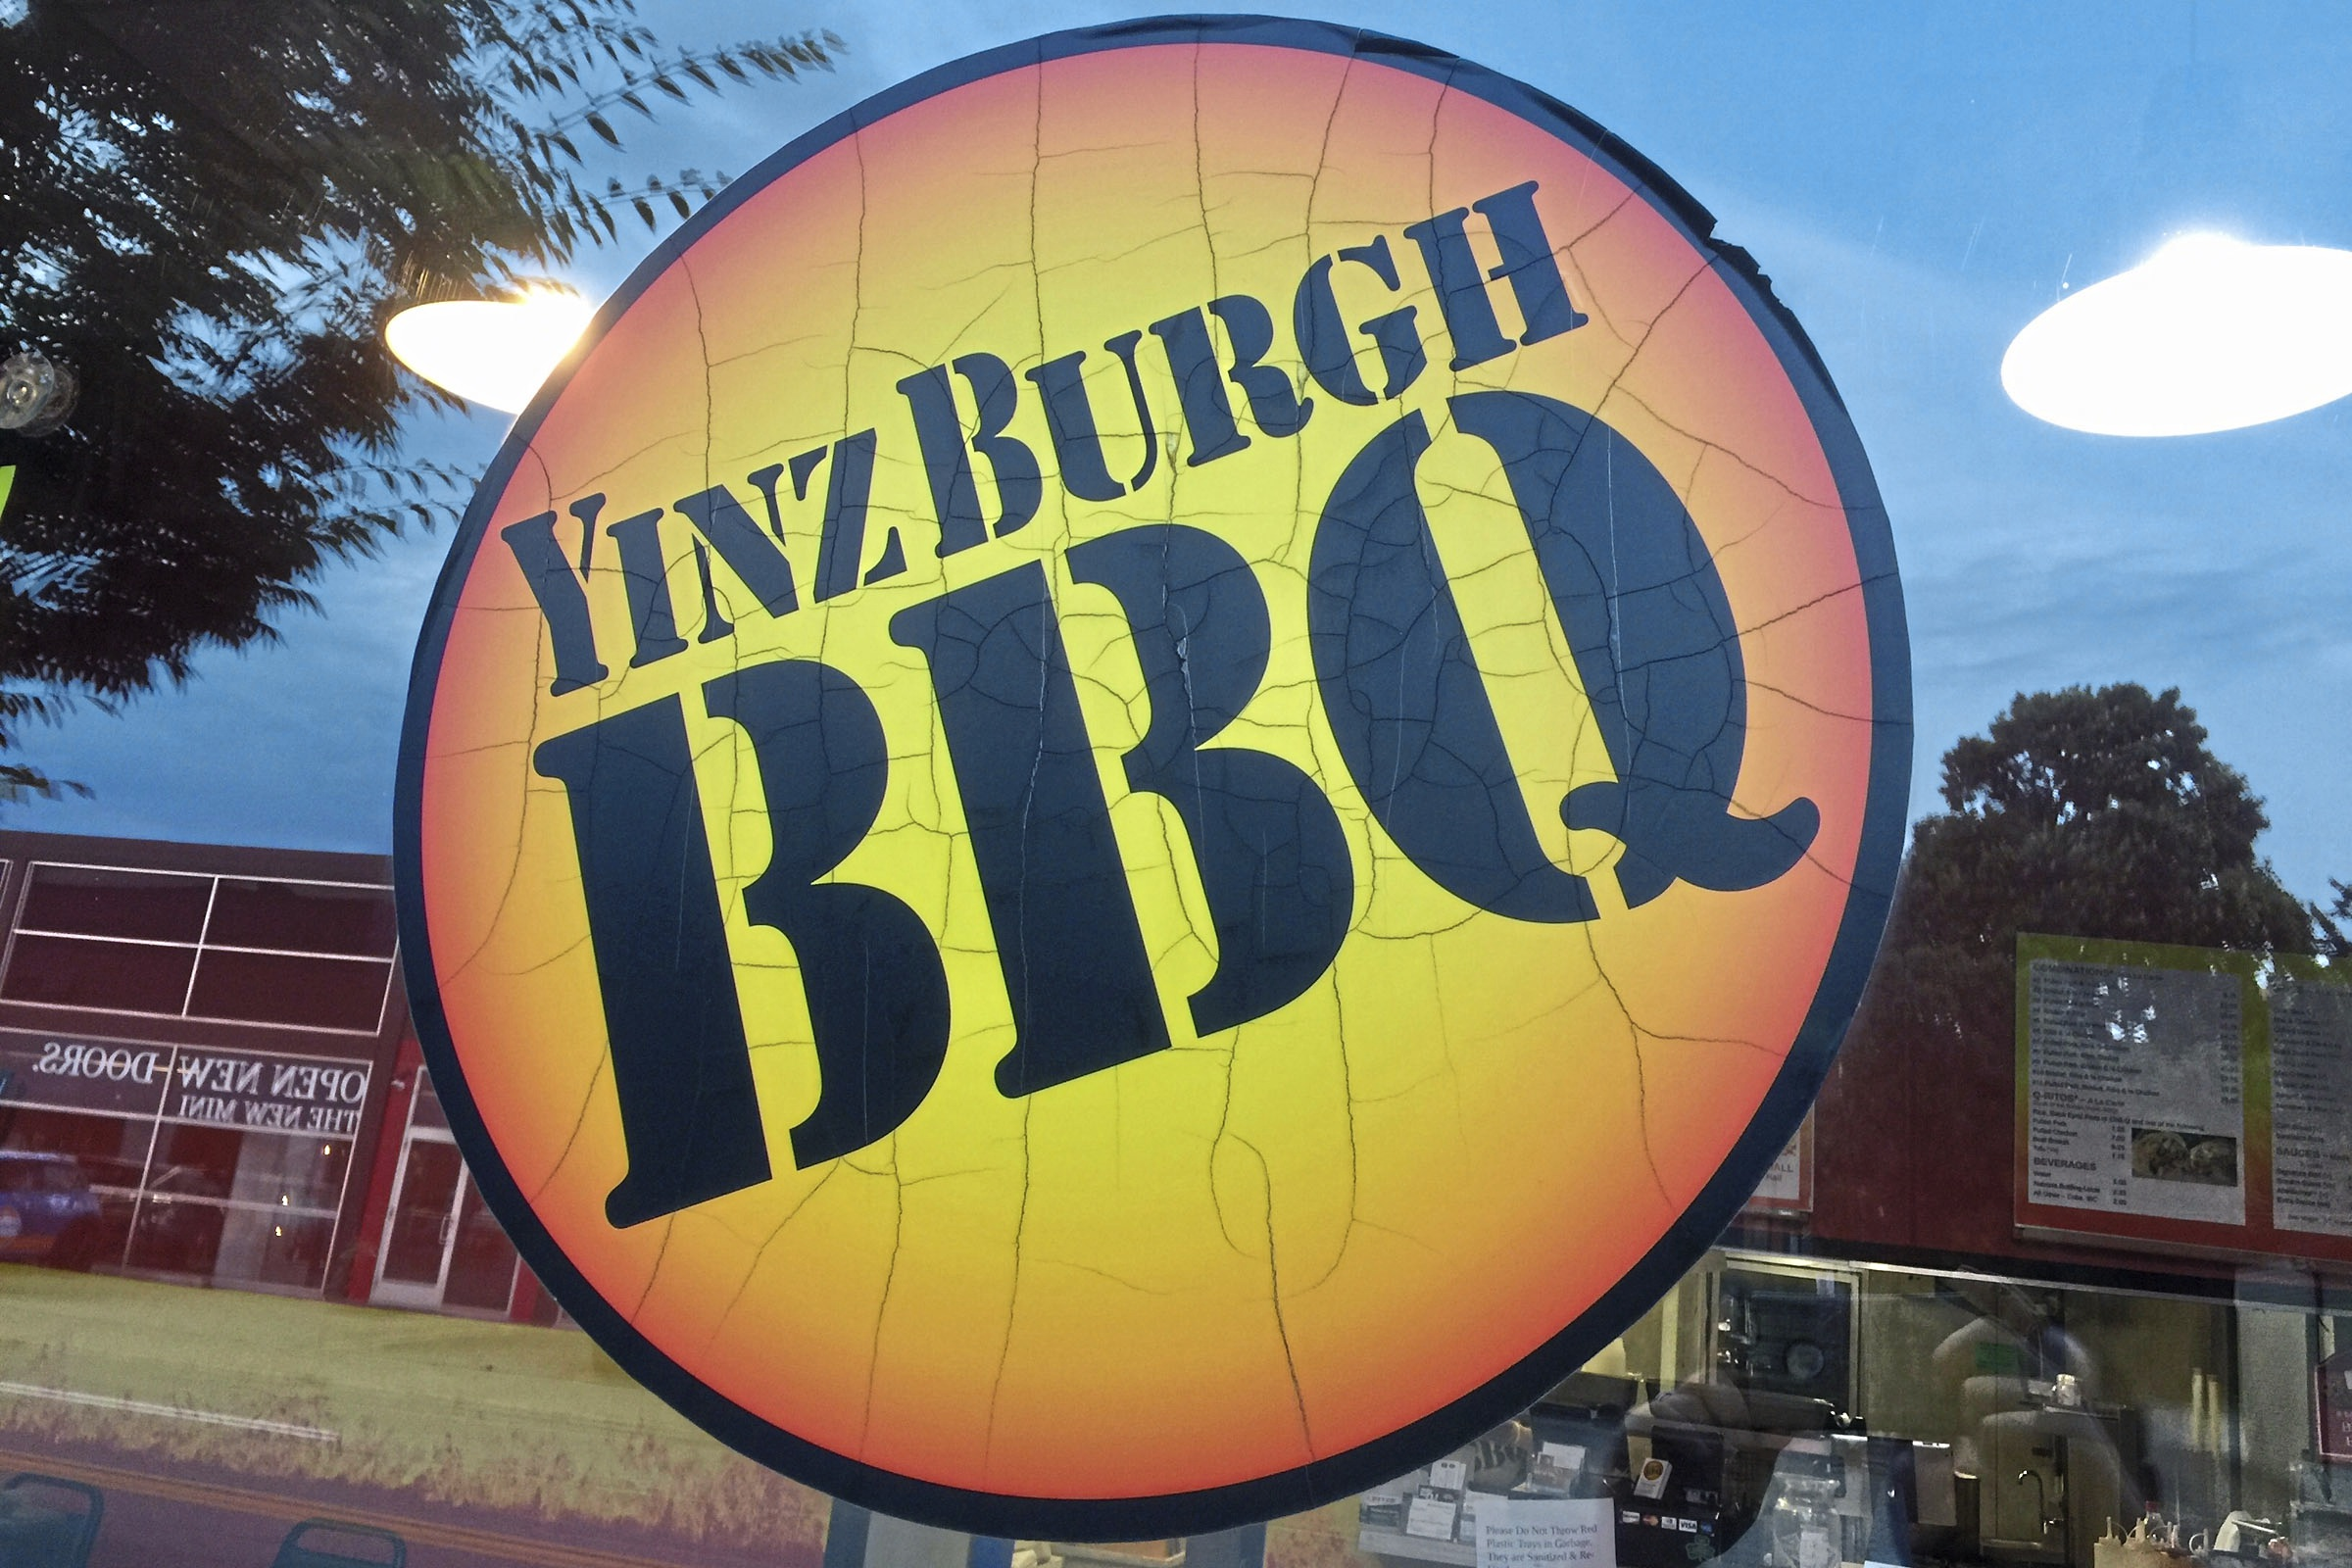 barbeque yinzburgh logo-2 The logo on the window at Yinzburgh BBQ in Oakland